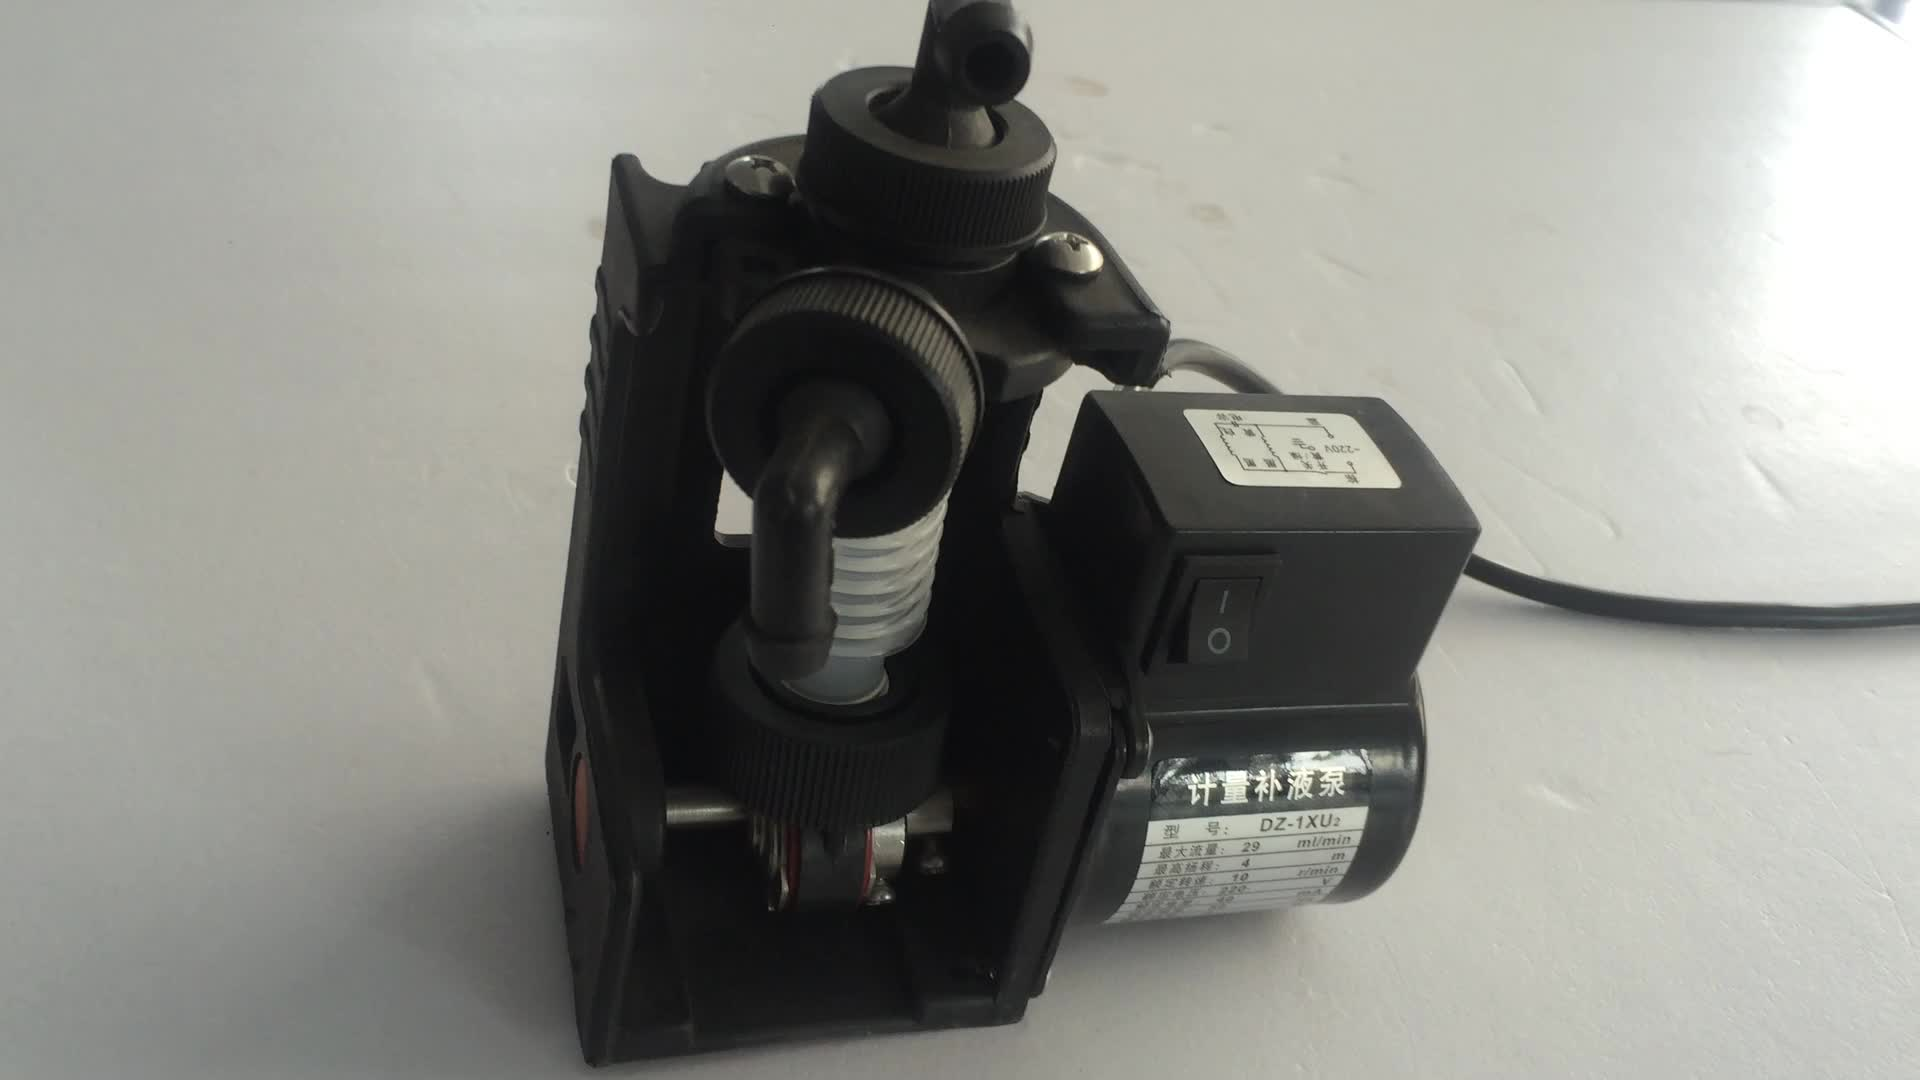 SISAN DZ-2Y 3.0psi IWAKI small metering pumps Food Additive Metering Pump Chemical Bellows Dosing Pump